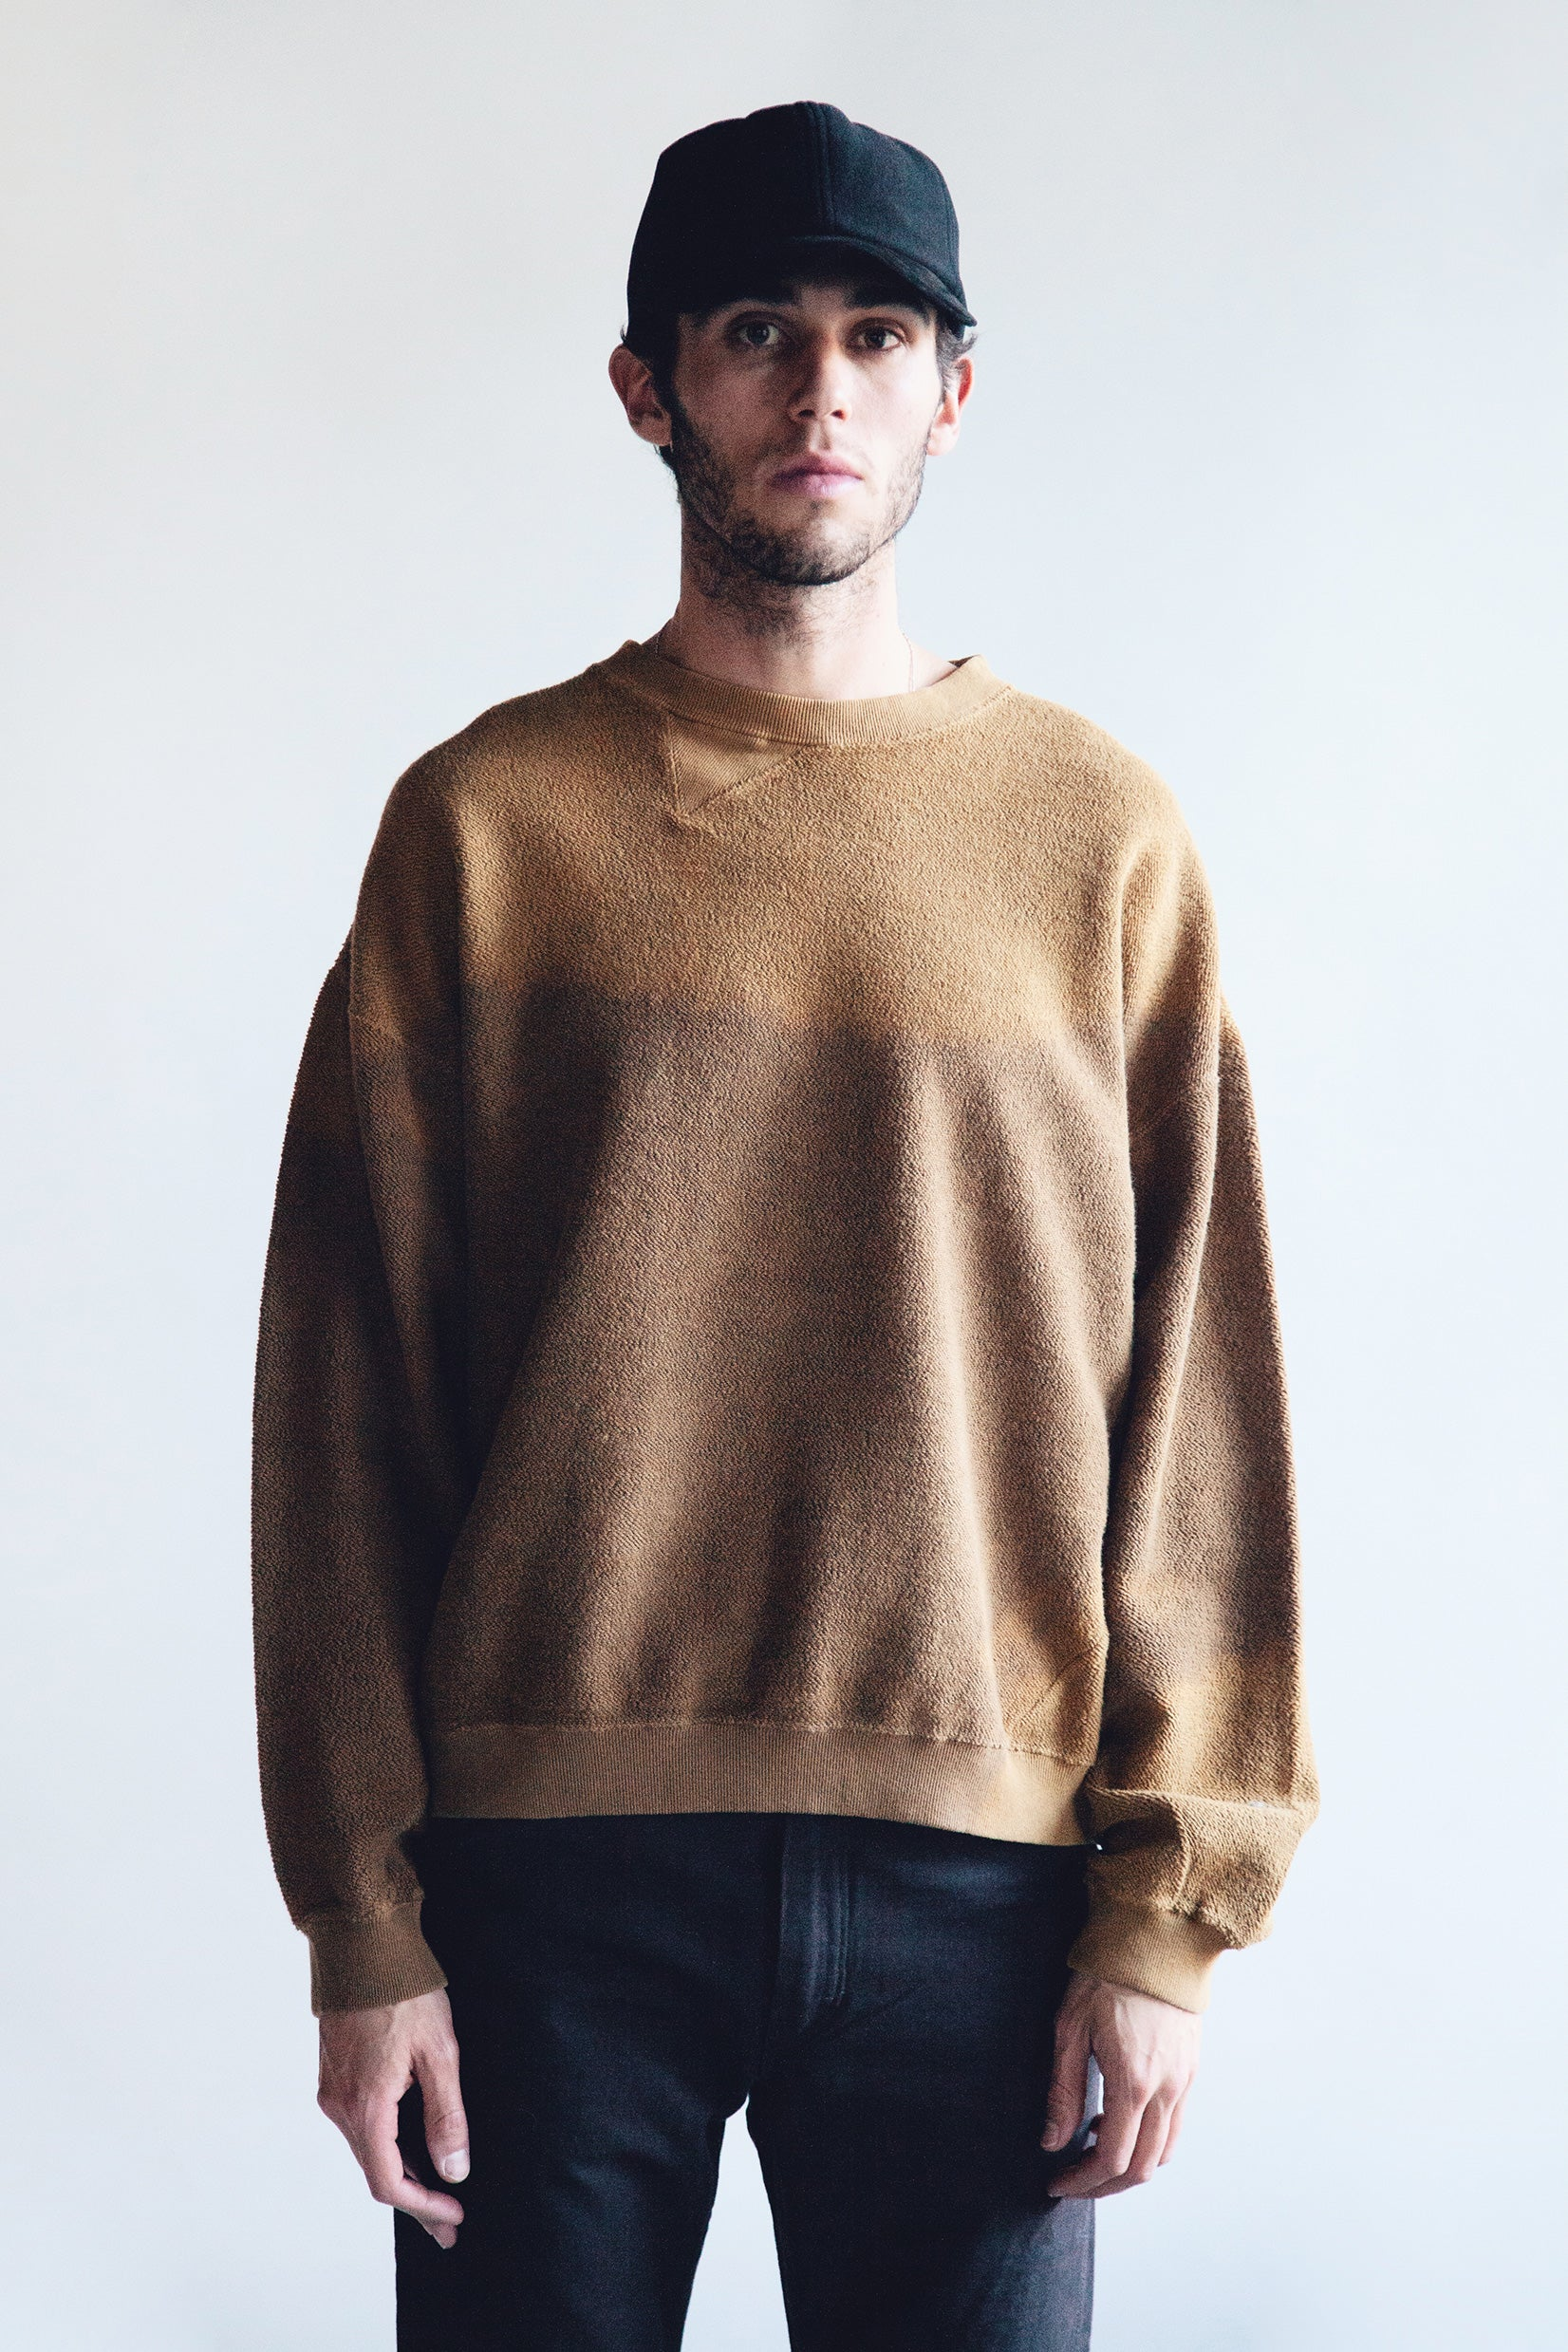 Noma - Breach Twist Sweatshirt - Walnut - Canoe Club